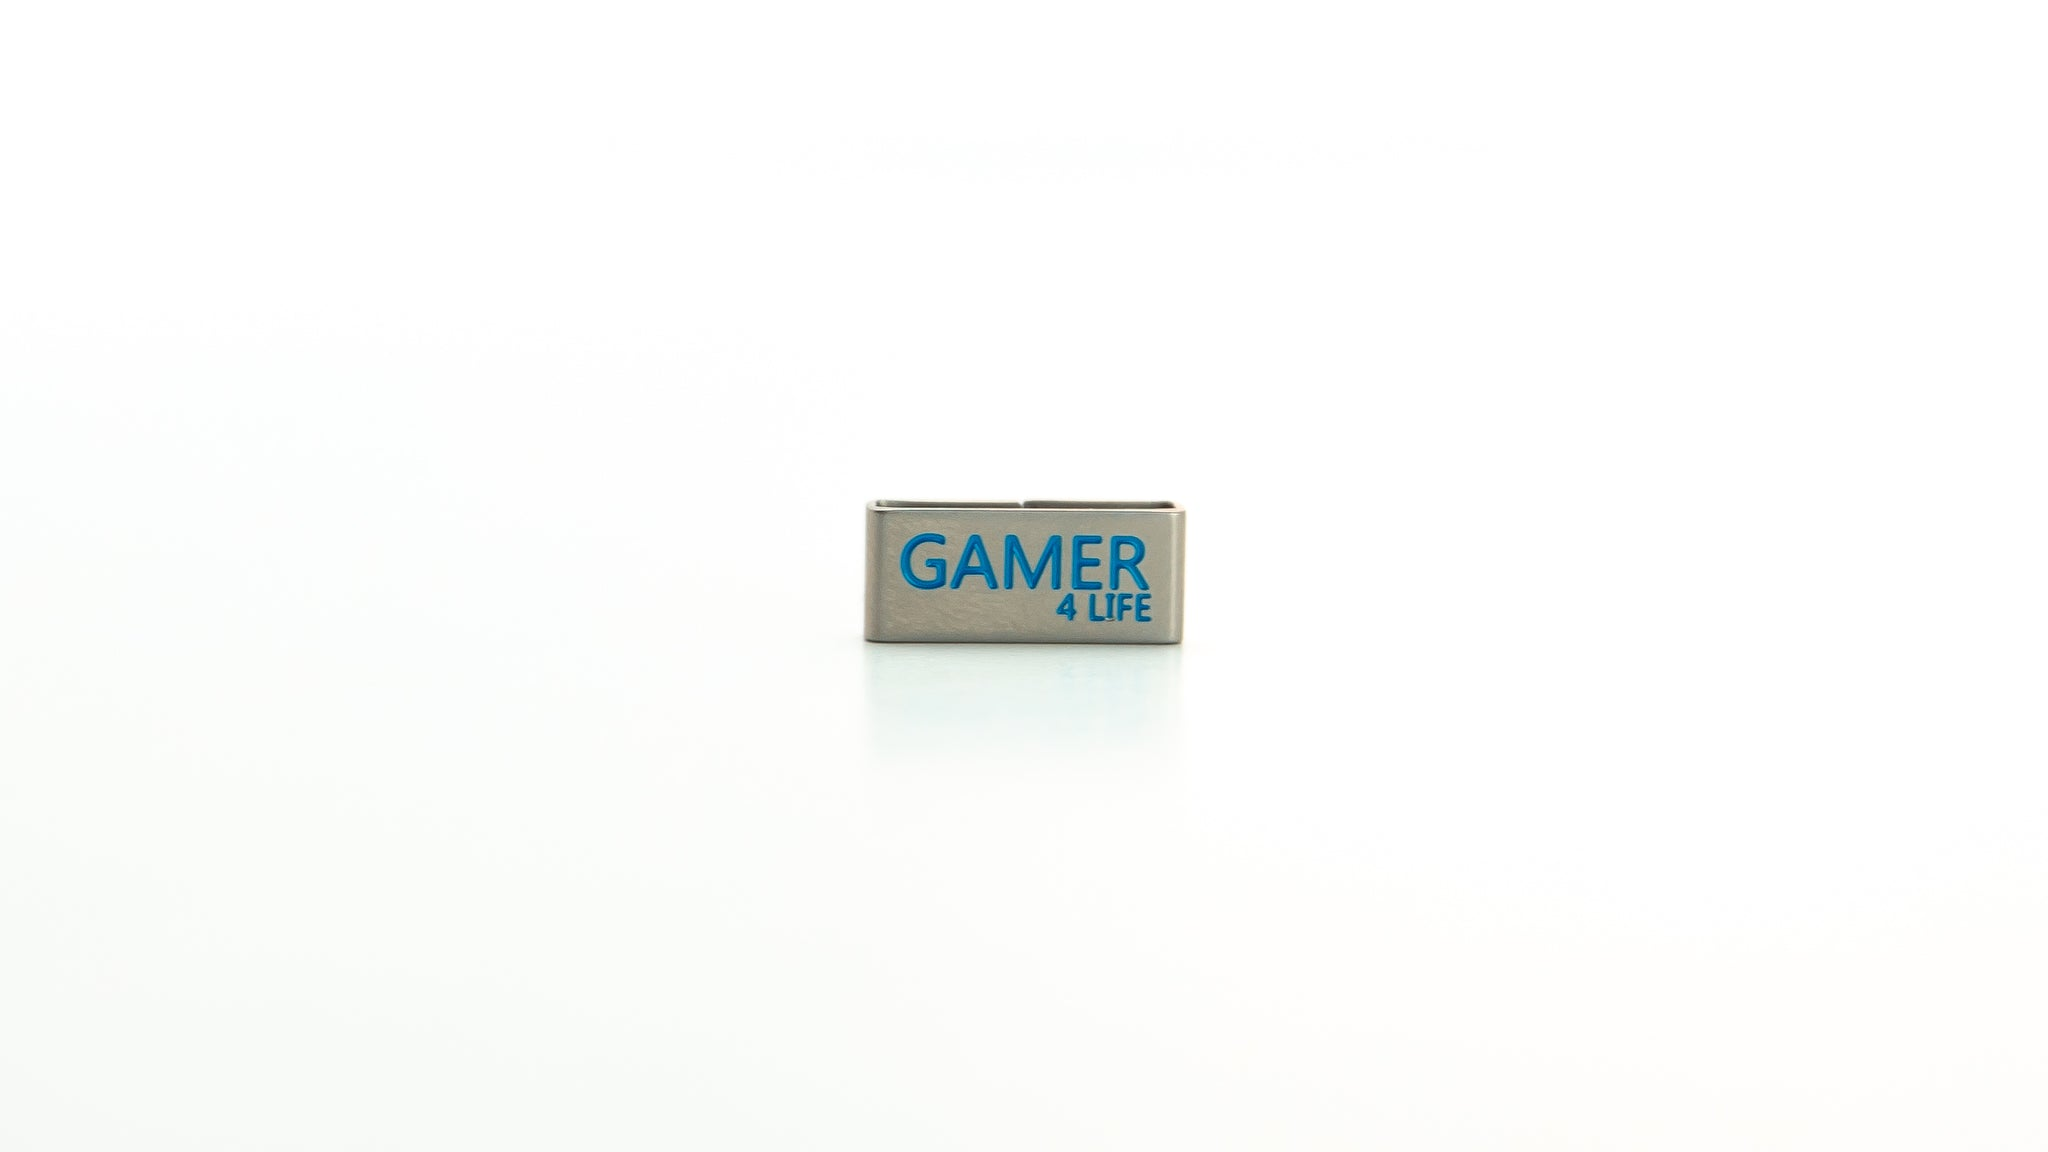 Gamer charm stainless steel tag. Radtagz collectible charms. Boys jewelry. Mens charms